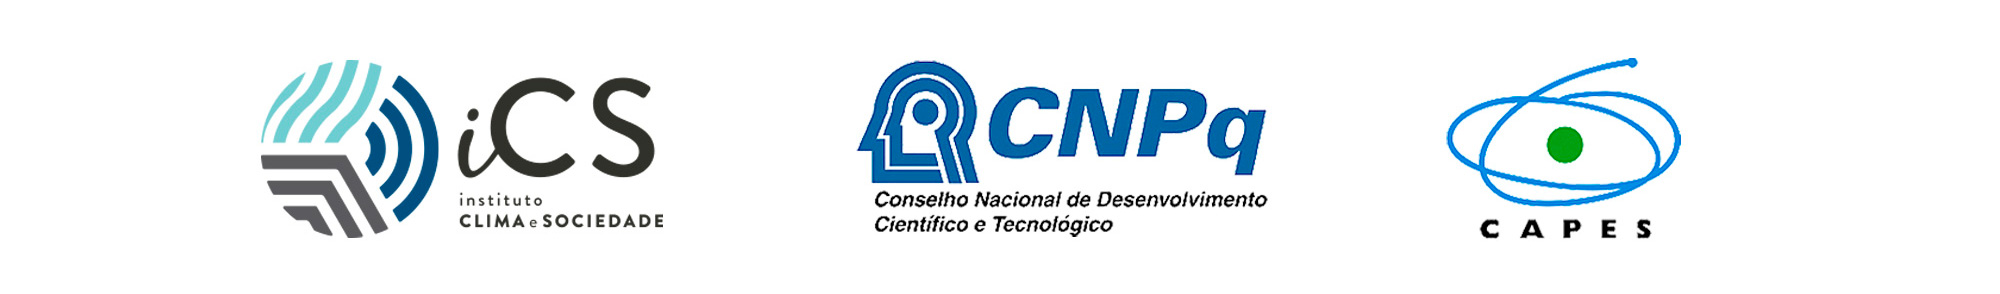 LOGOS-ICS-CNPQ-CAPES1